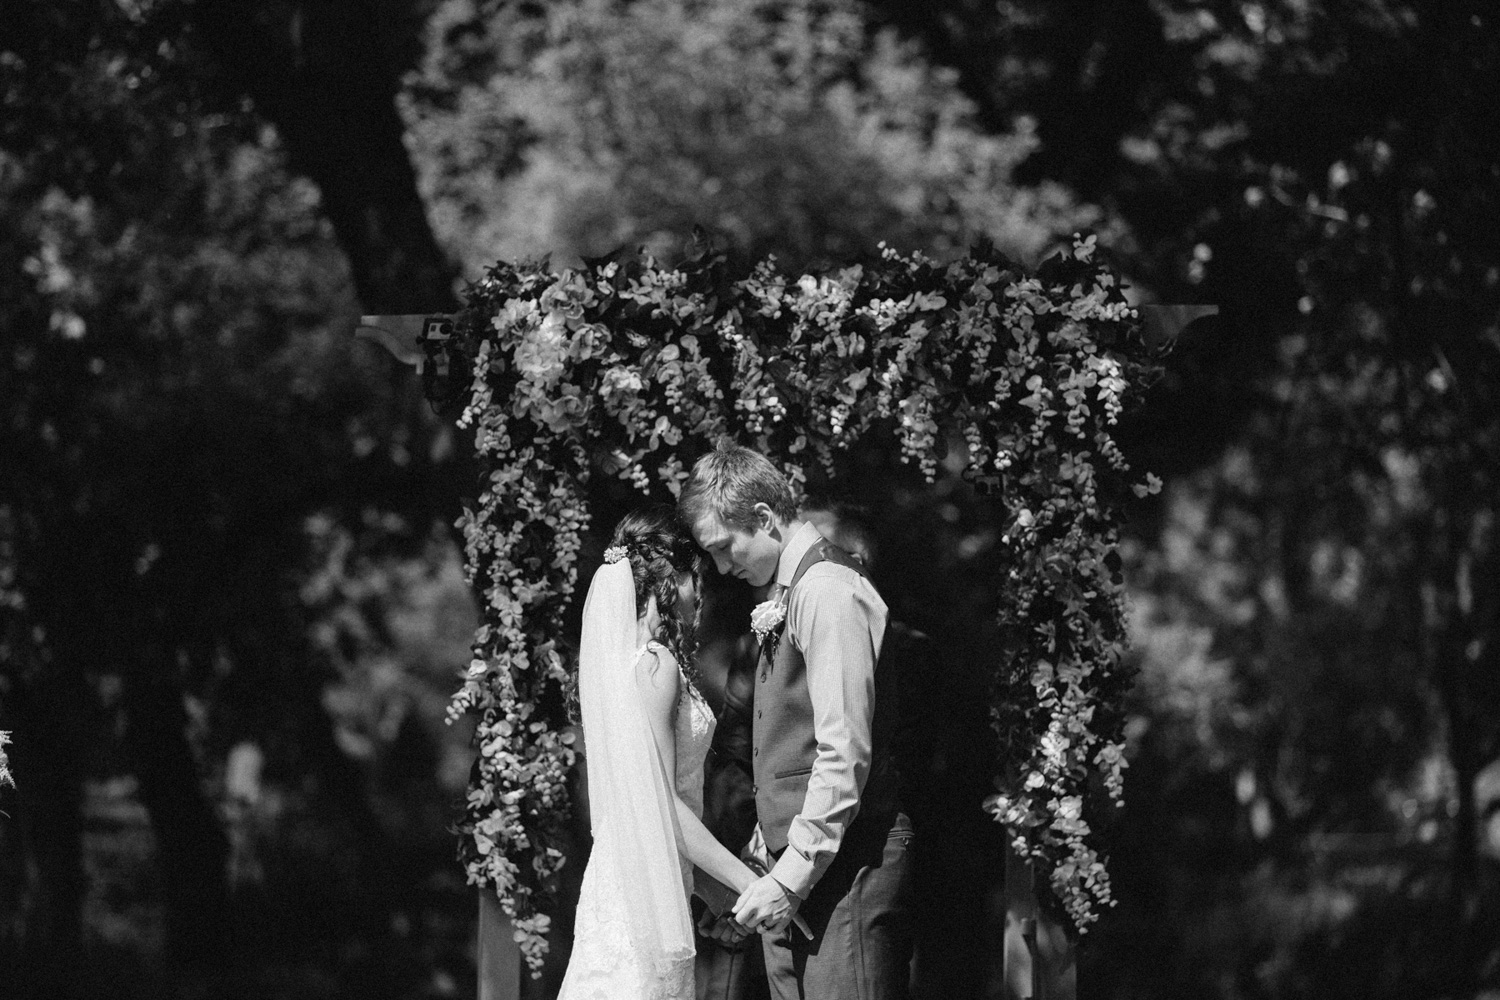 Outdoor_Wedding_SiouxFalls_MaryJoWegnerArboretum_Photographer_Calli&Jon_088.jpg